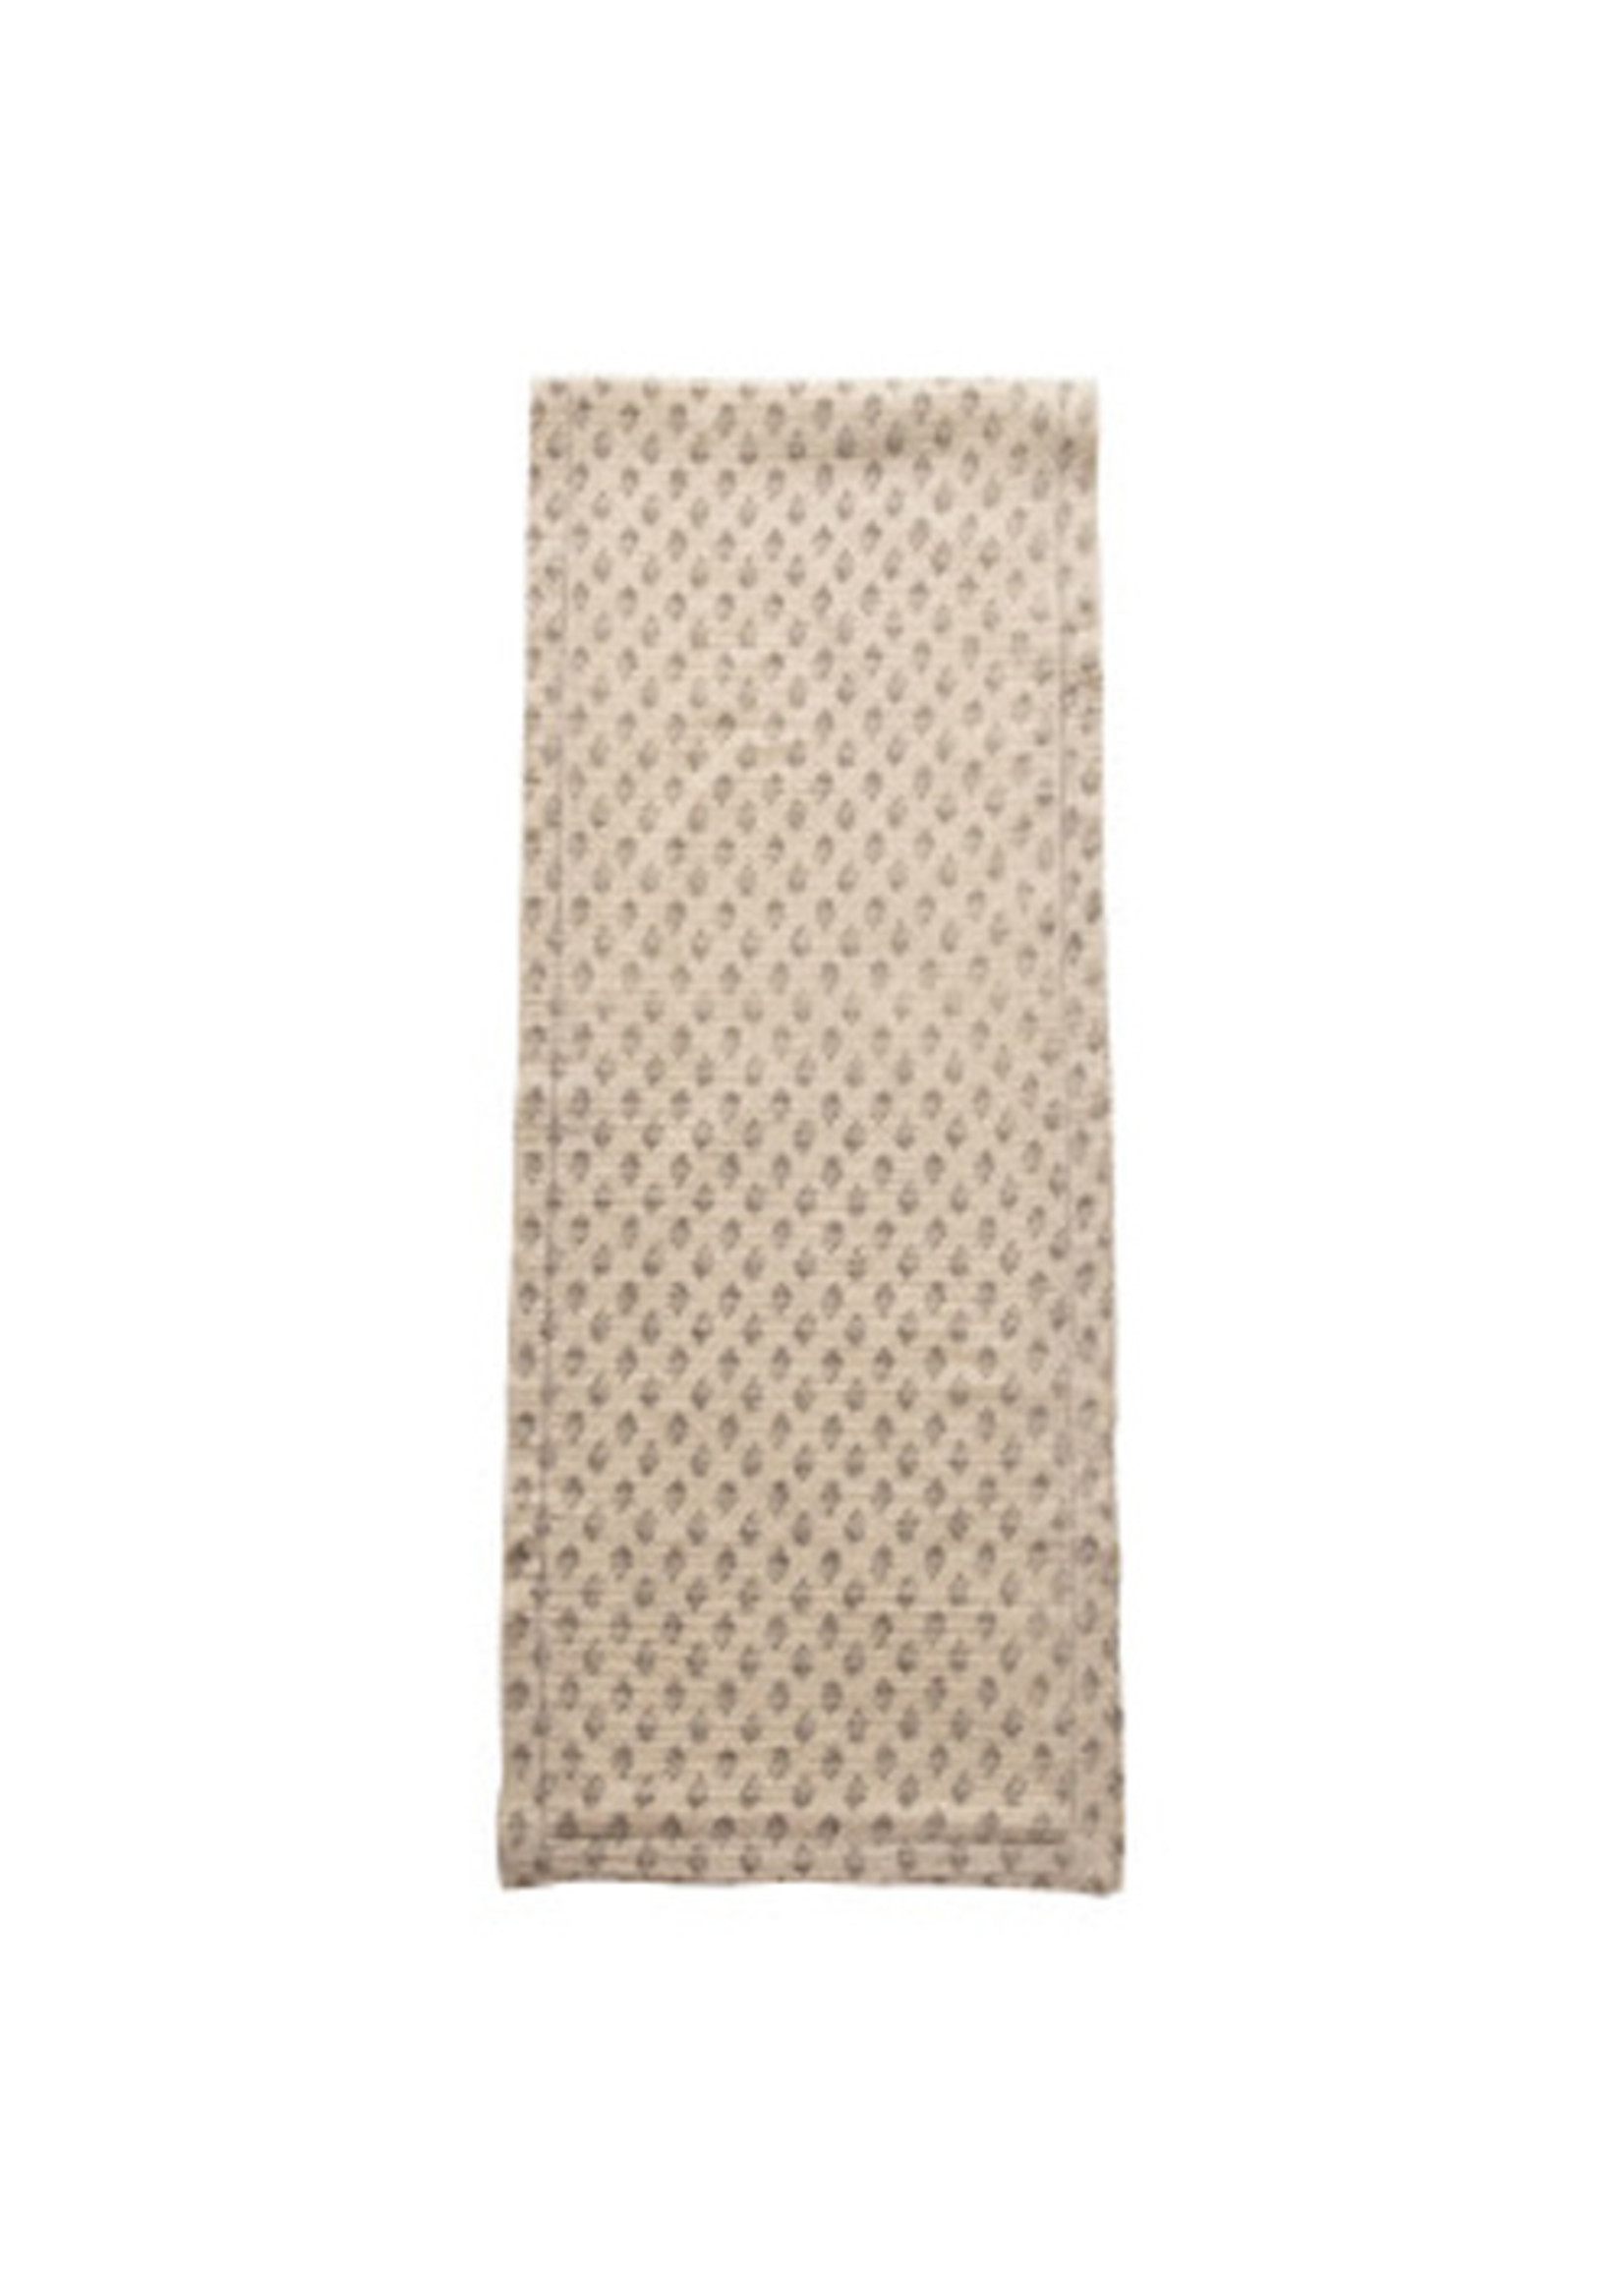 Cotton Table Runner with Floral Pattern